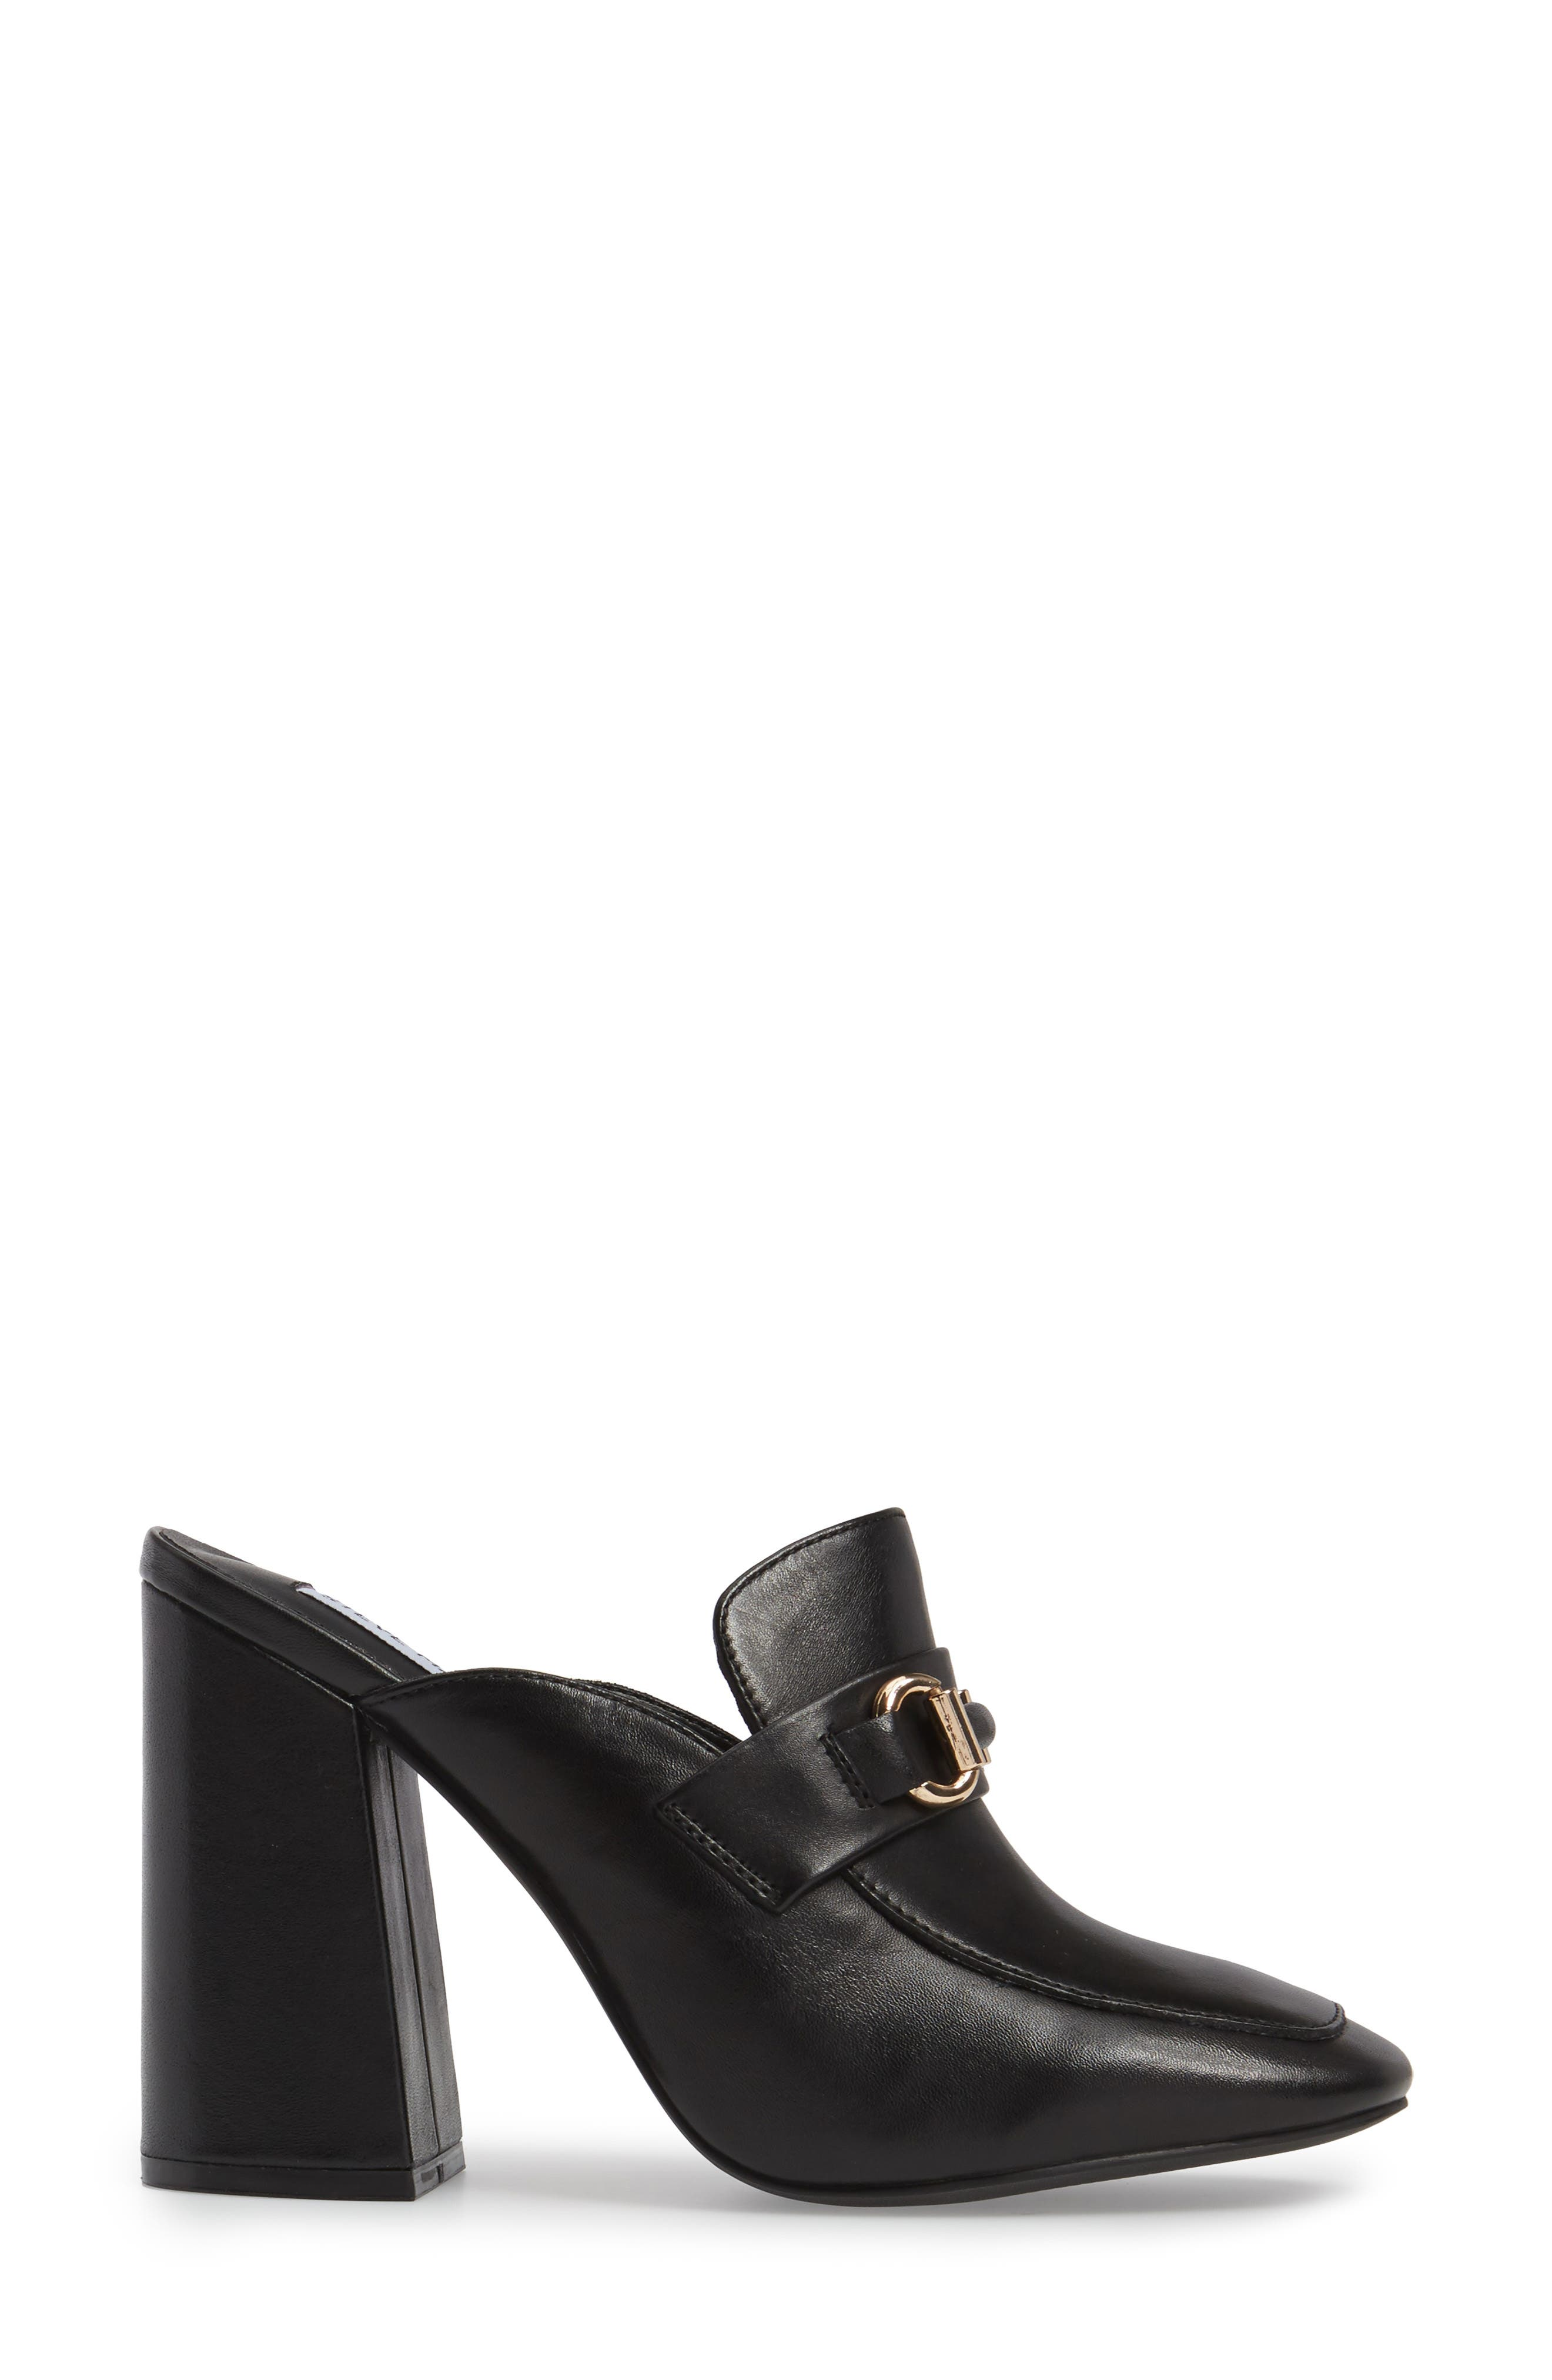 Chuckie Flared Heel Loafer Mule,                             Alternate thumbnail 3, color,                             001